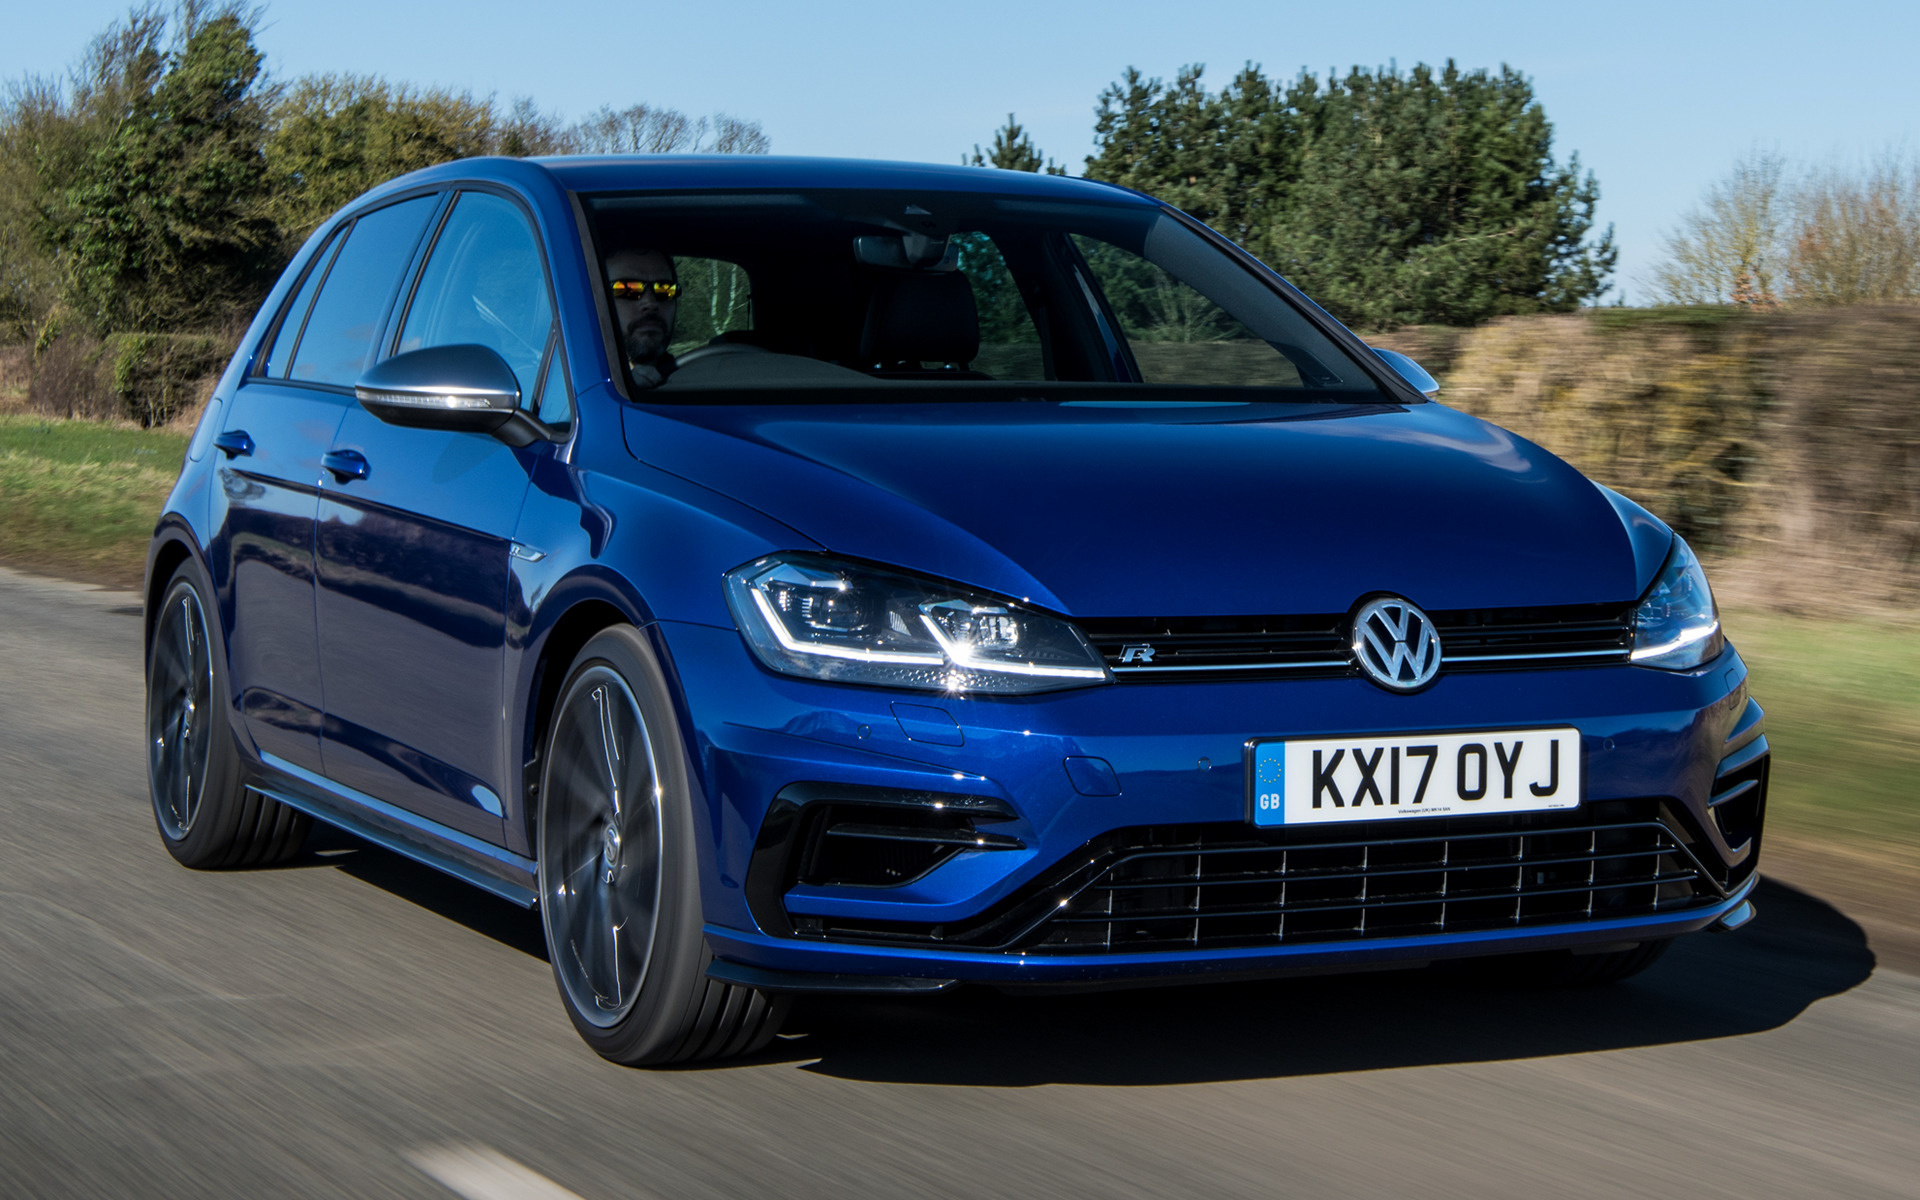 2017 volkswagen golf r 5 door uk wallpapers and hd. Black Bedroom Furniture Sets. Home Design Ideas